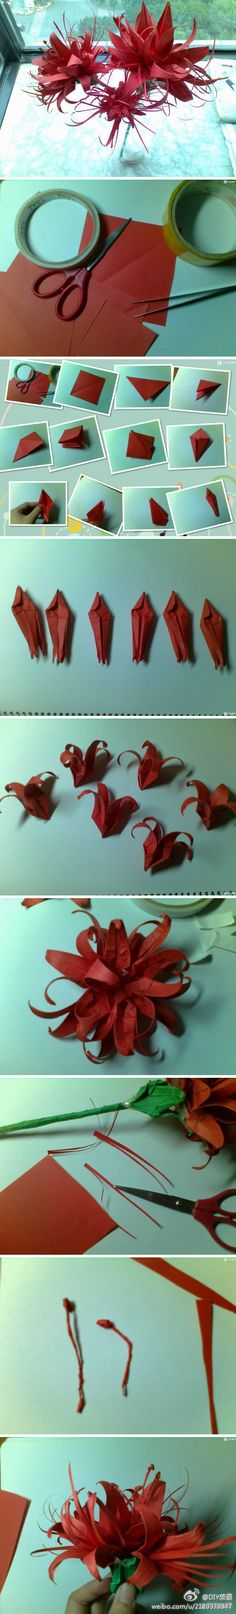 Spider Lily Flowers - Origami